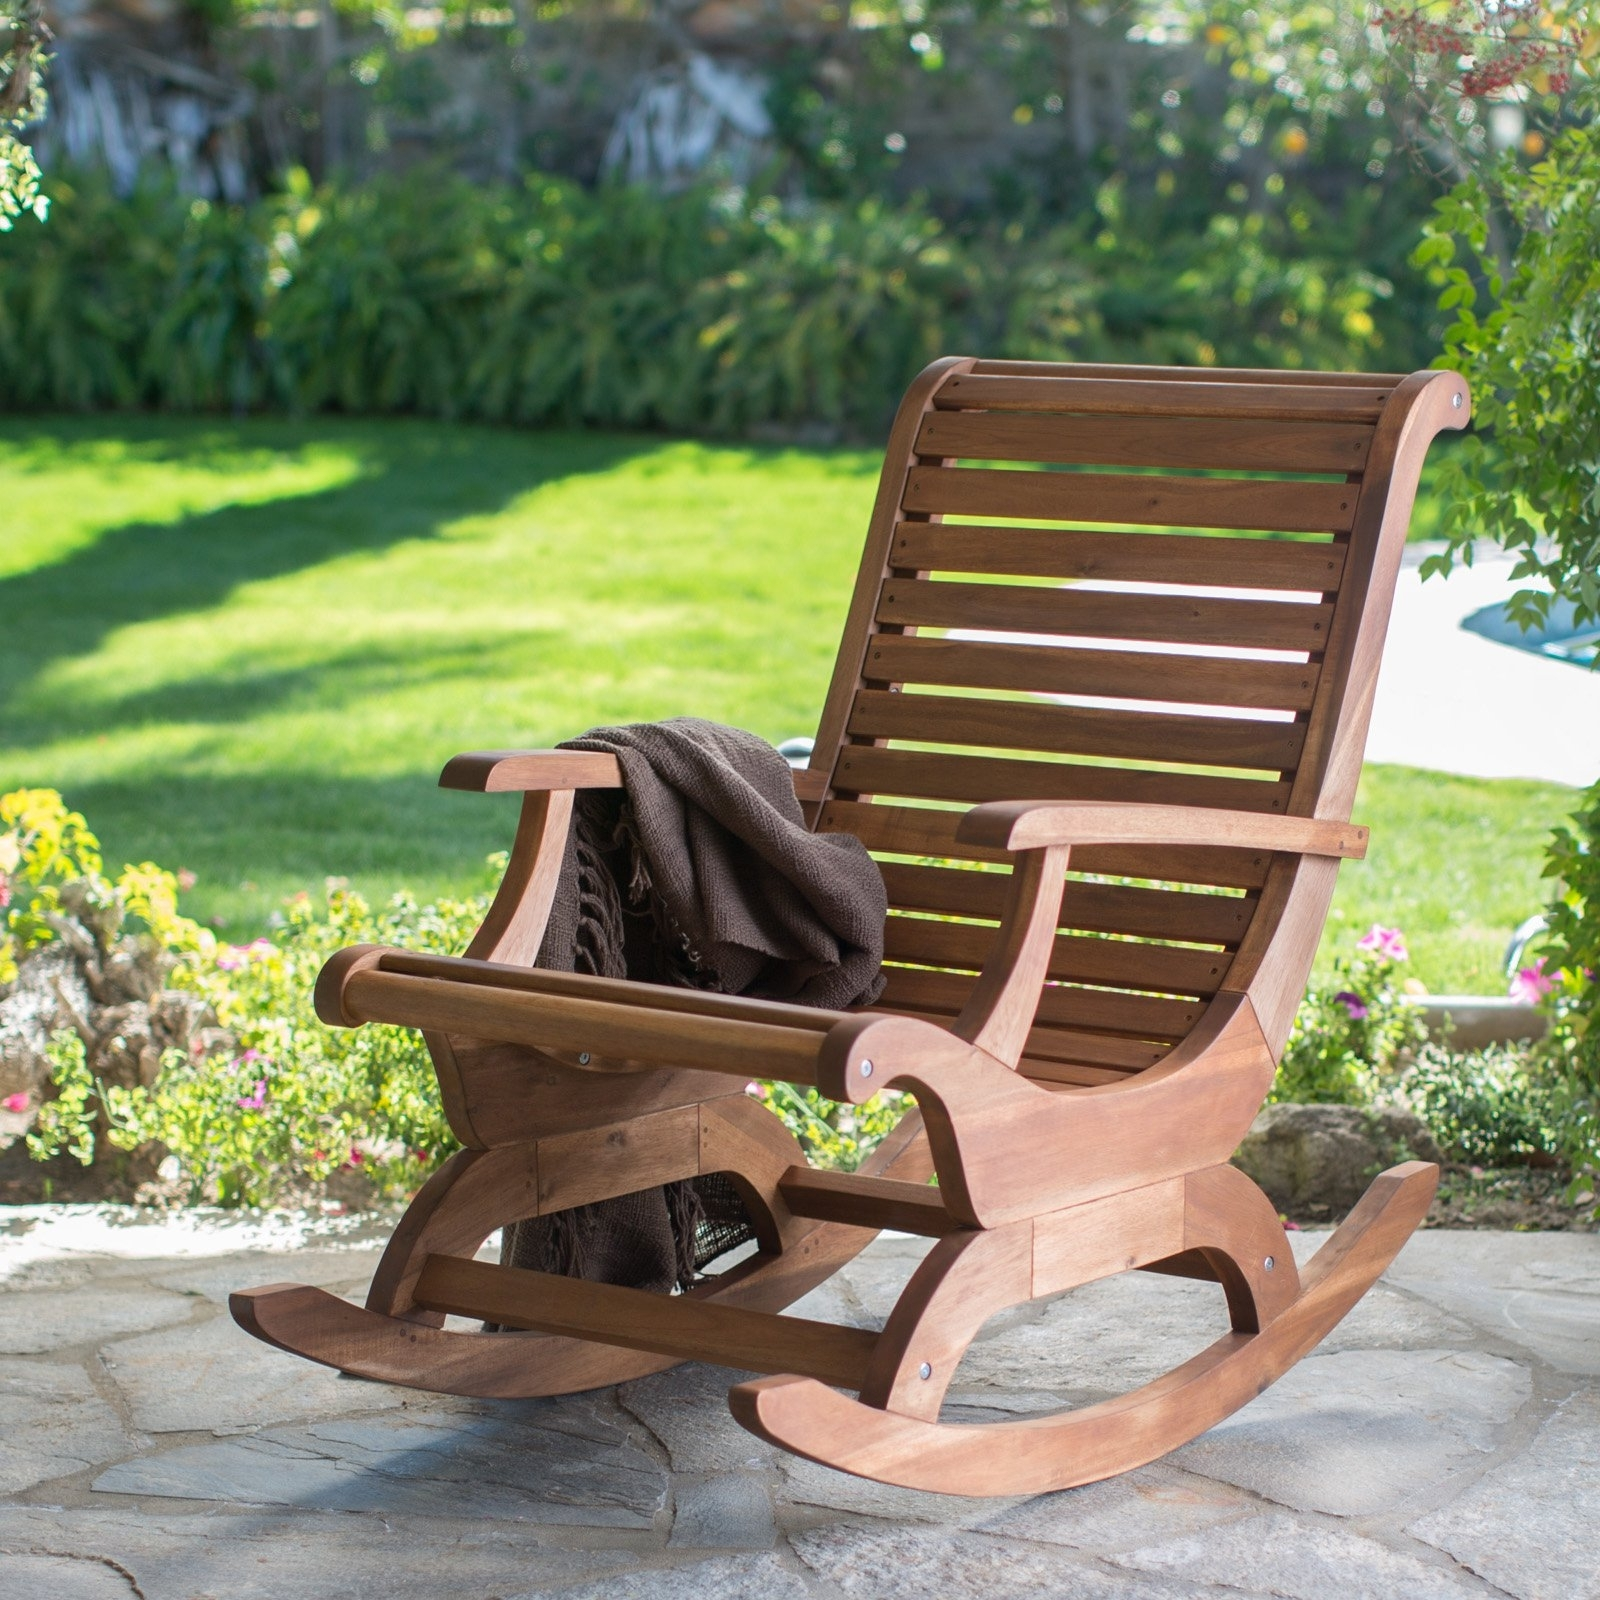 Most Recent Outdoor Rocking Chairs With Regard To Belham Living Avondale Oversized Outdoor Rocking Chair – Natural (View 9 of 15)